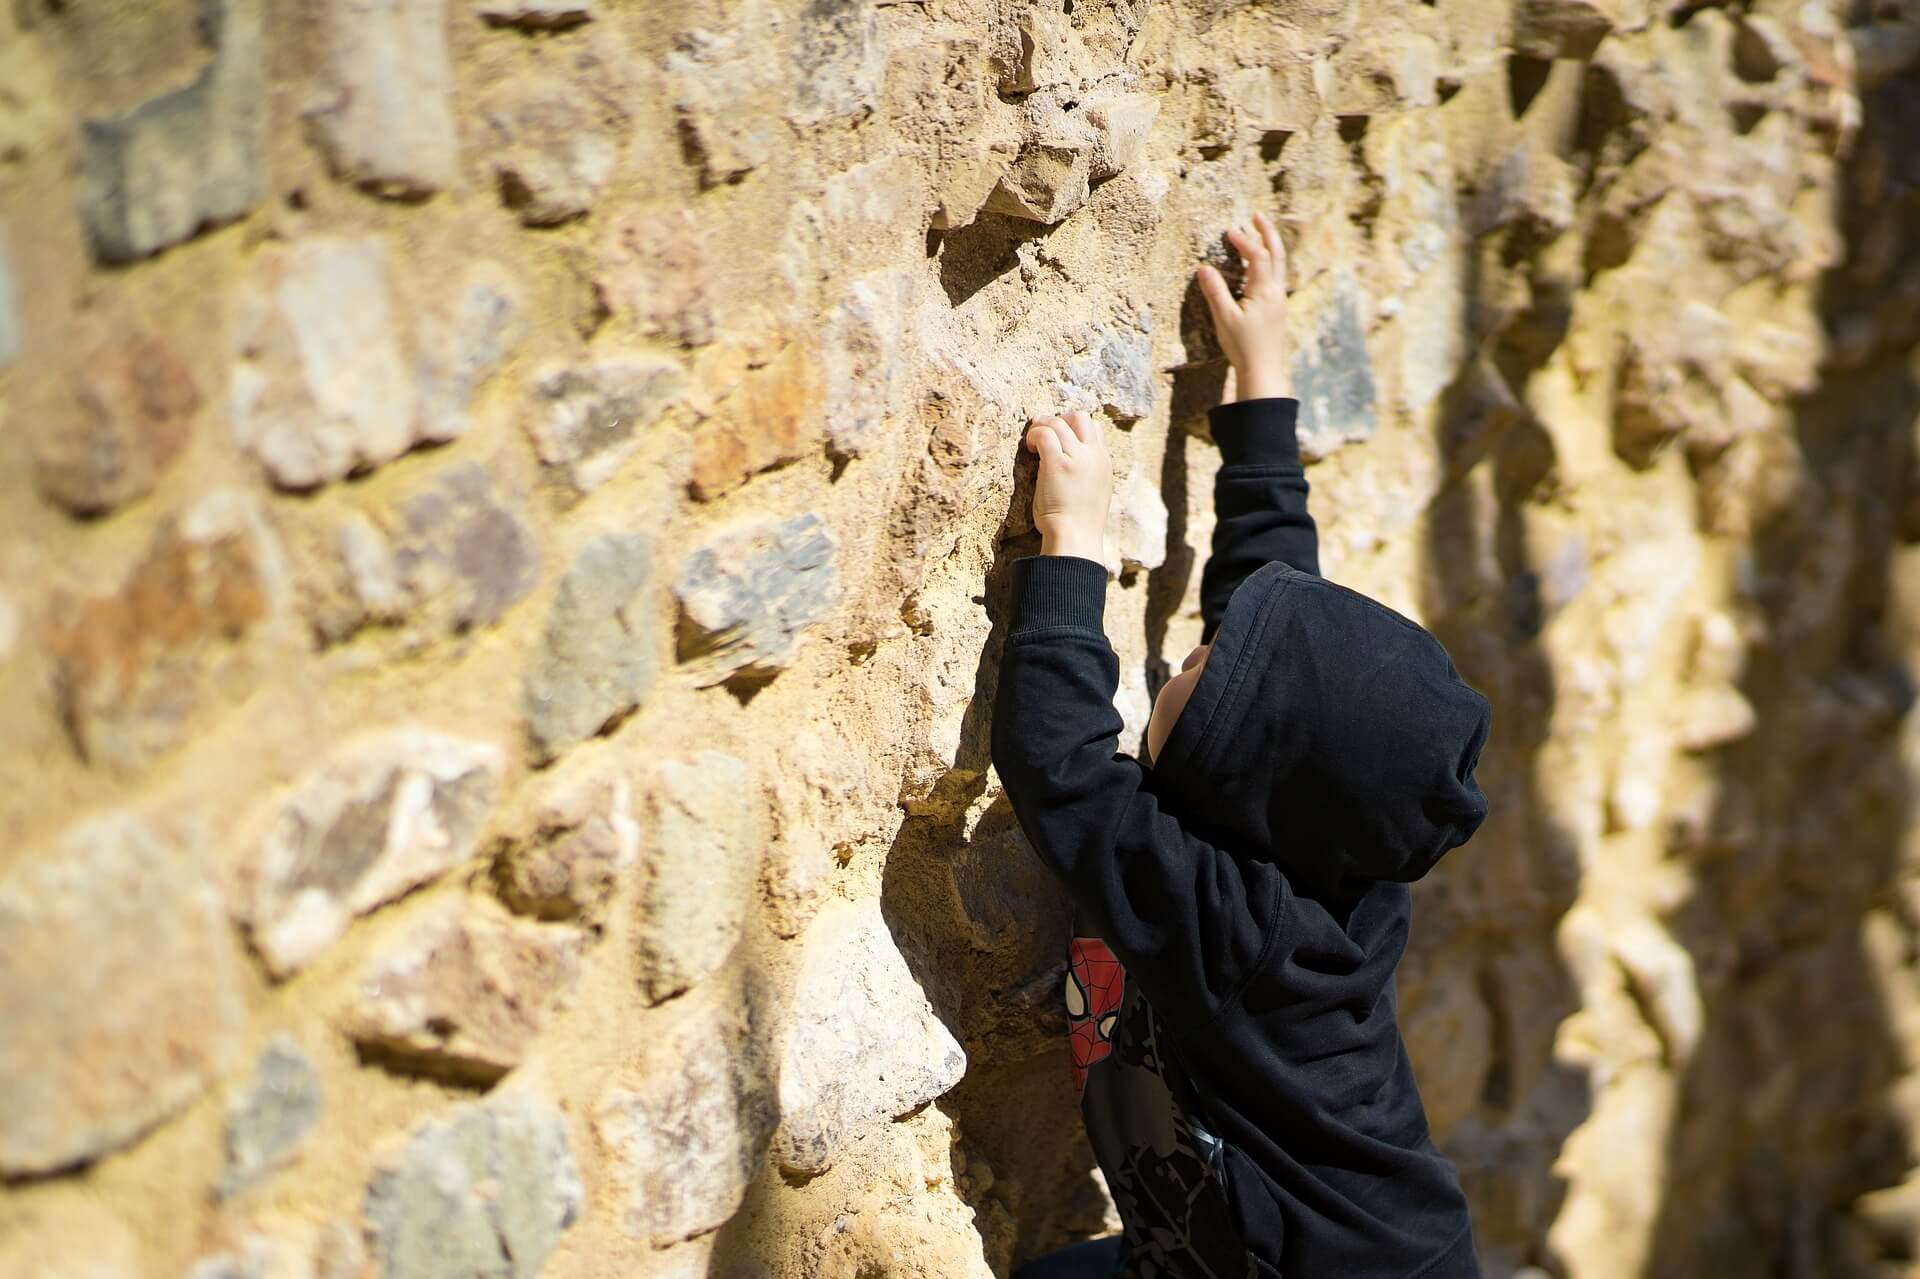 why does life suck? boy at a wall